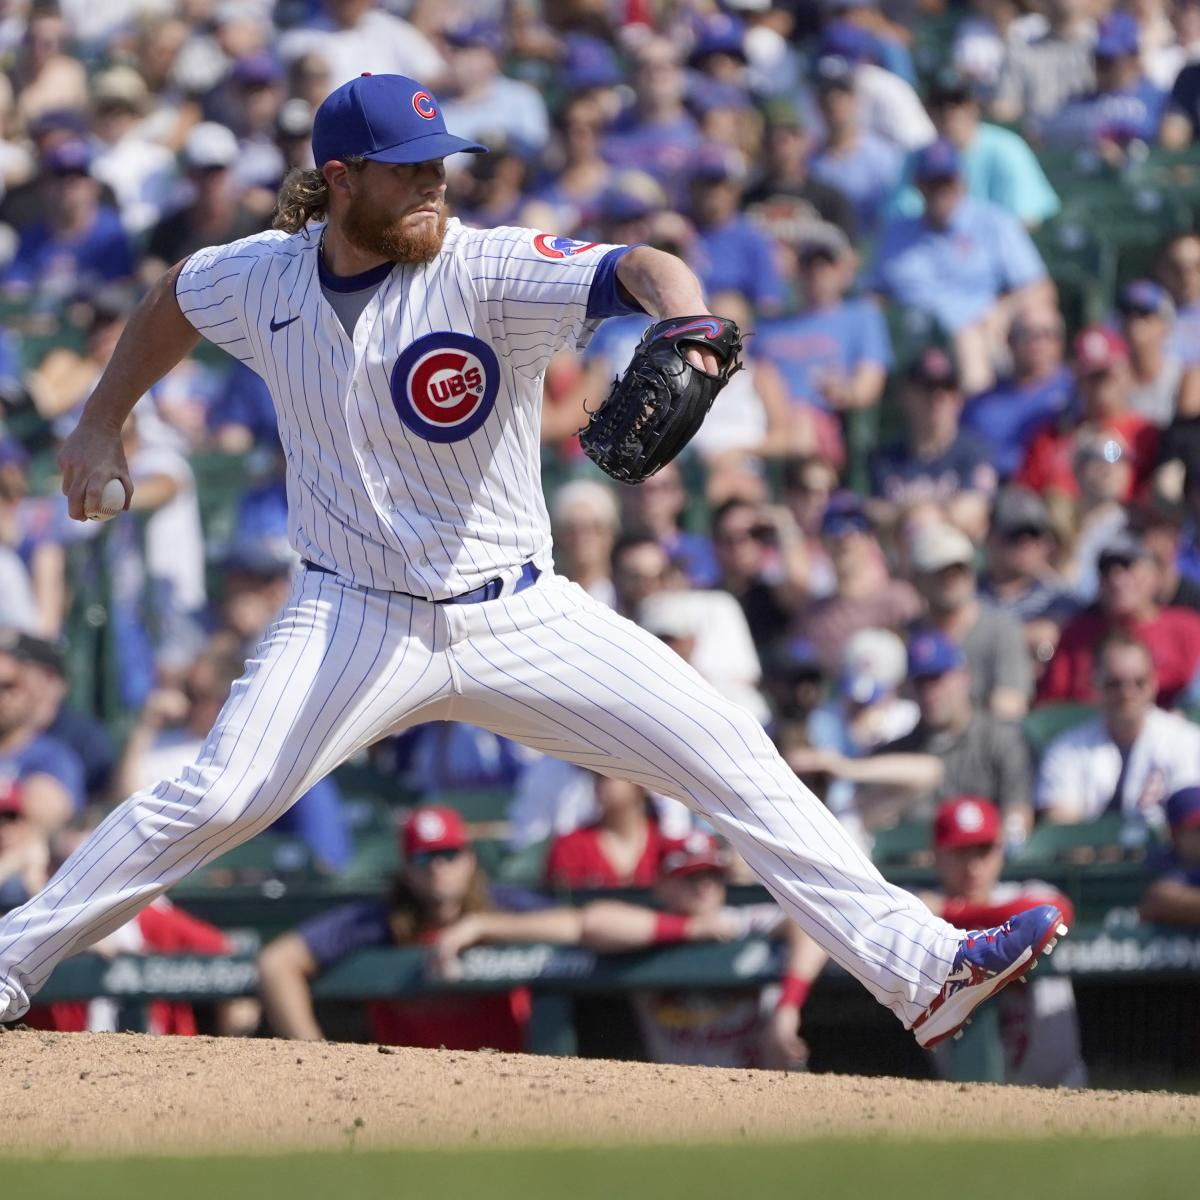 Report: Craig Kimbrel Traded to White Sox from Cubs Ahead of 2021 MLB Deadline